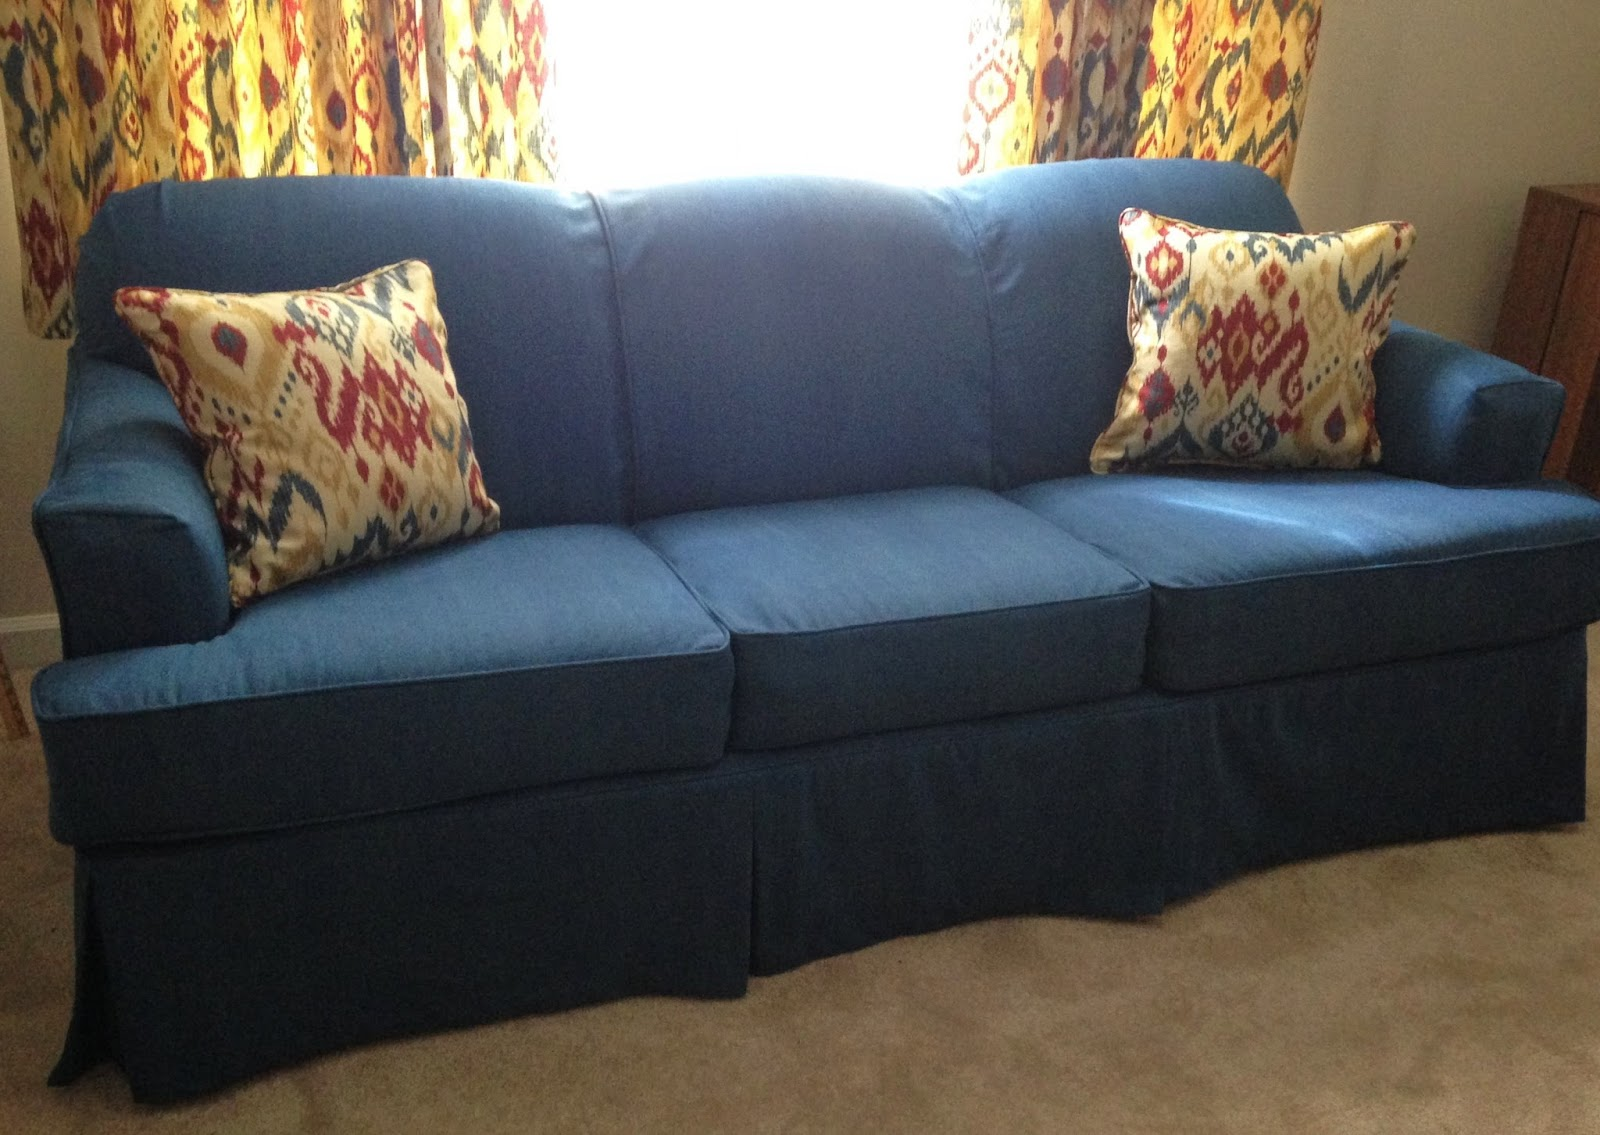 Couch And Sofas Chesterfield Sofa Wikipedia Pam Morris Sews Denim On A Sleeper